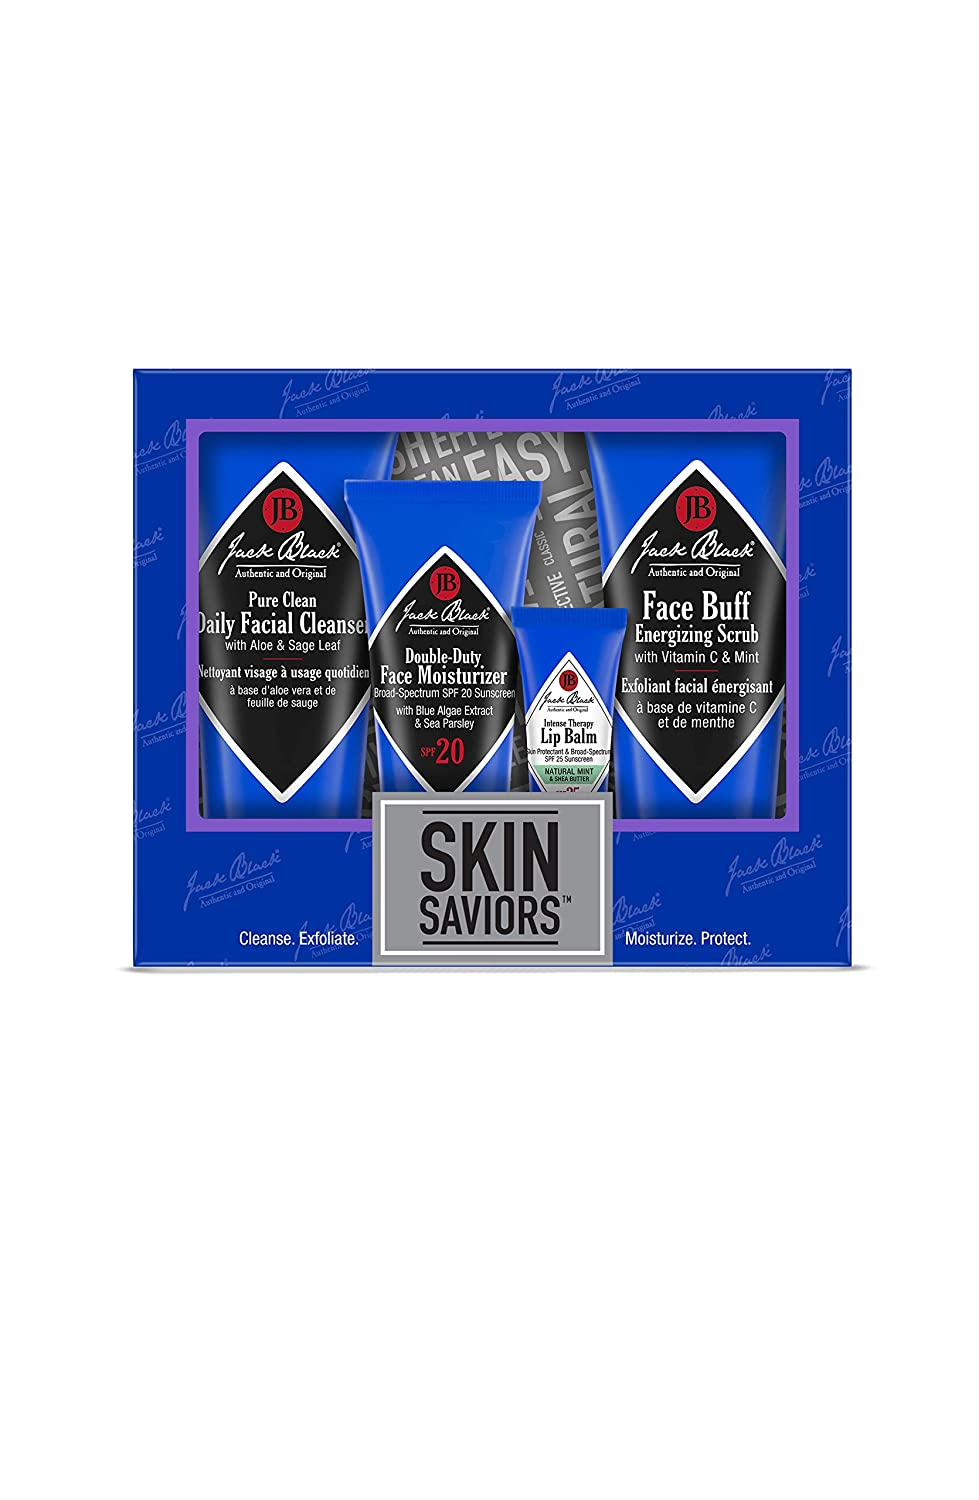 Jack Black - Skin Saviors Set - Pure Clean Daily Facial Cleanser, Face Buff Energizing Scrub, Double Duty Face Moisturizer SPF 20, Intense Therapy Lip Balm SPF 25, 4-Piece Kit